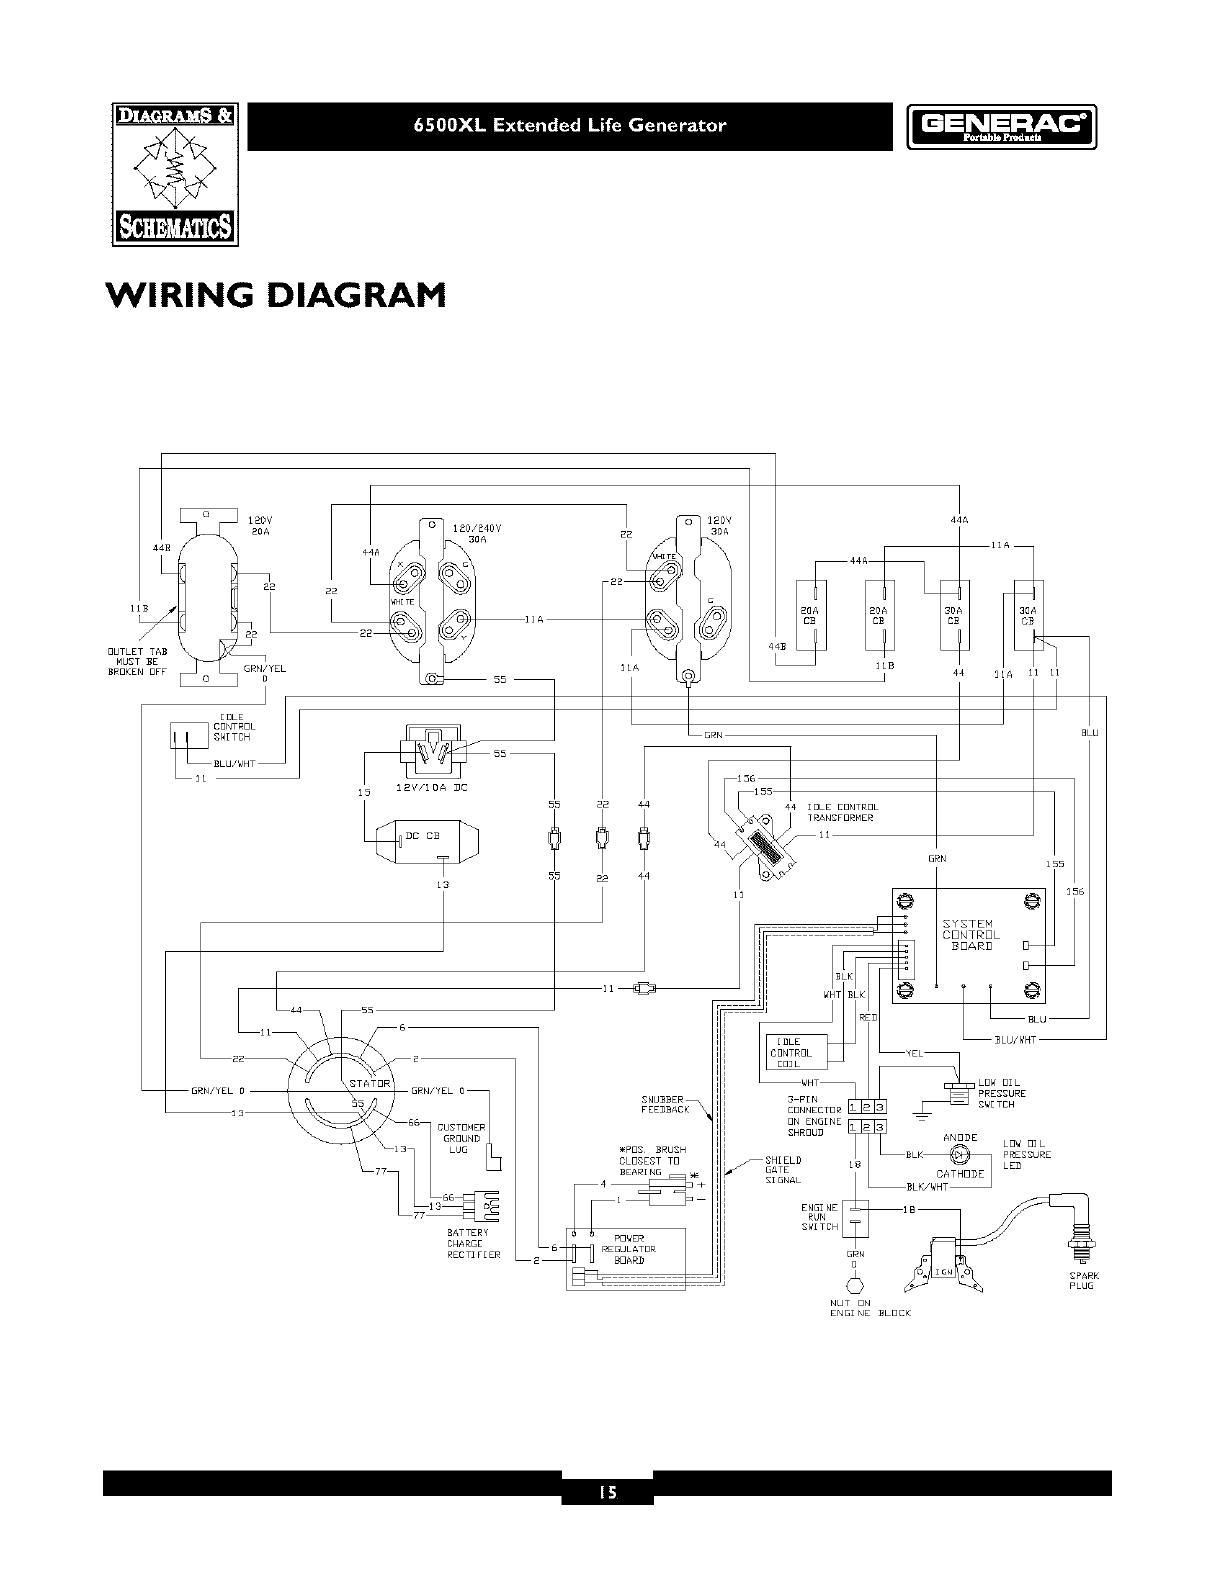 abacbfe4 09c9 46f3 b904 b7a0ca98baaa bgf page 15 of generac portable generator 6500xl user guide abac air compressor wiring diagram at mifinder.co